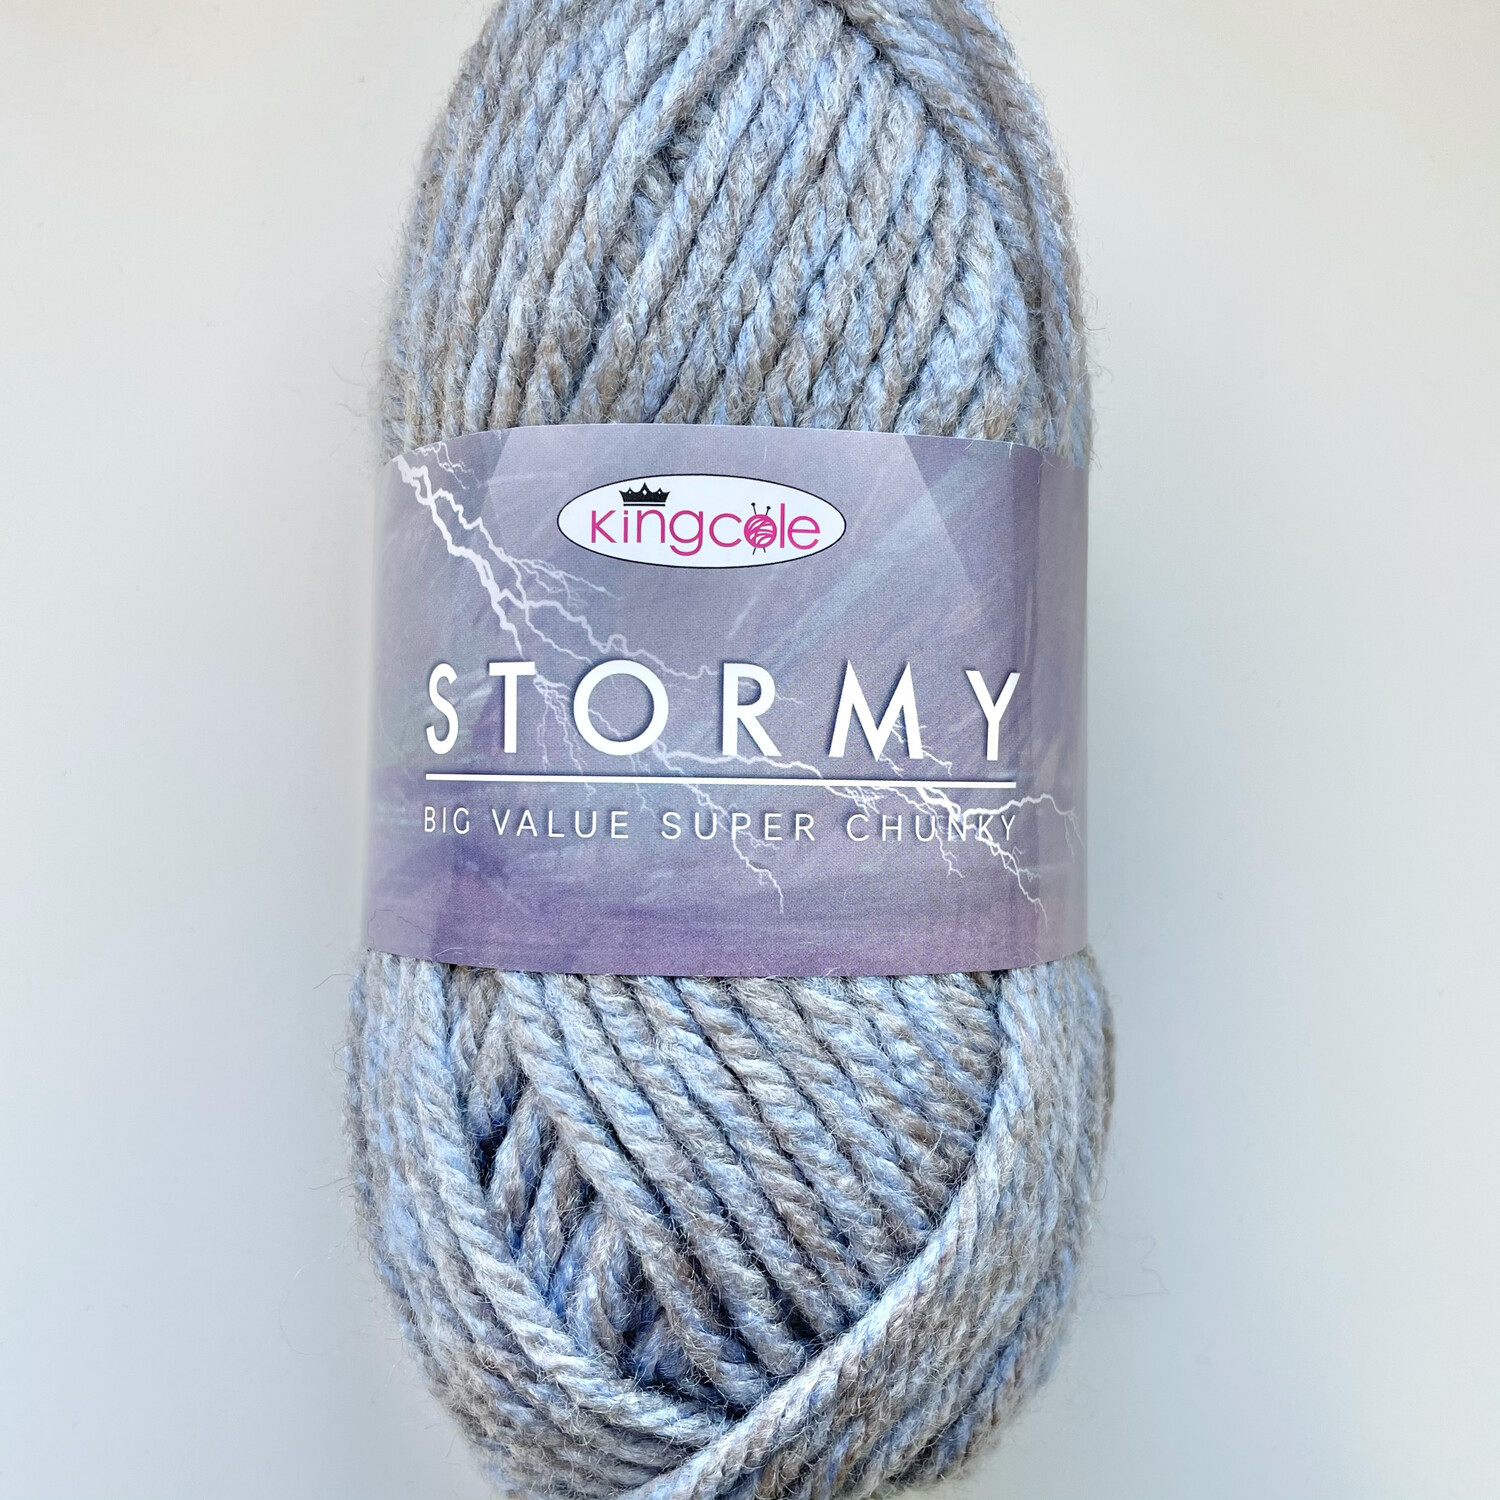 King Cole Big Value Super Chunky Stormy - Sleet